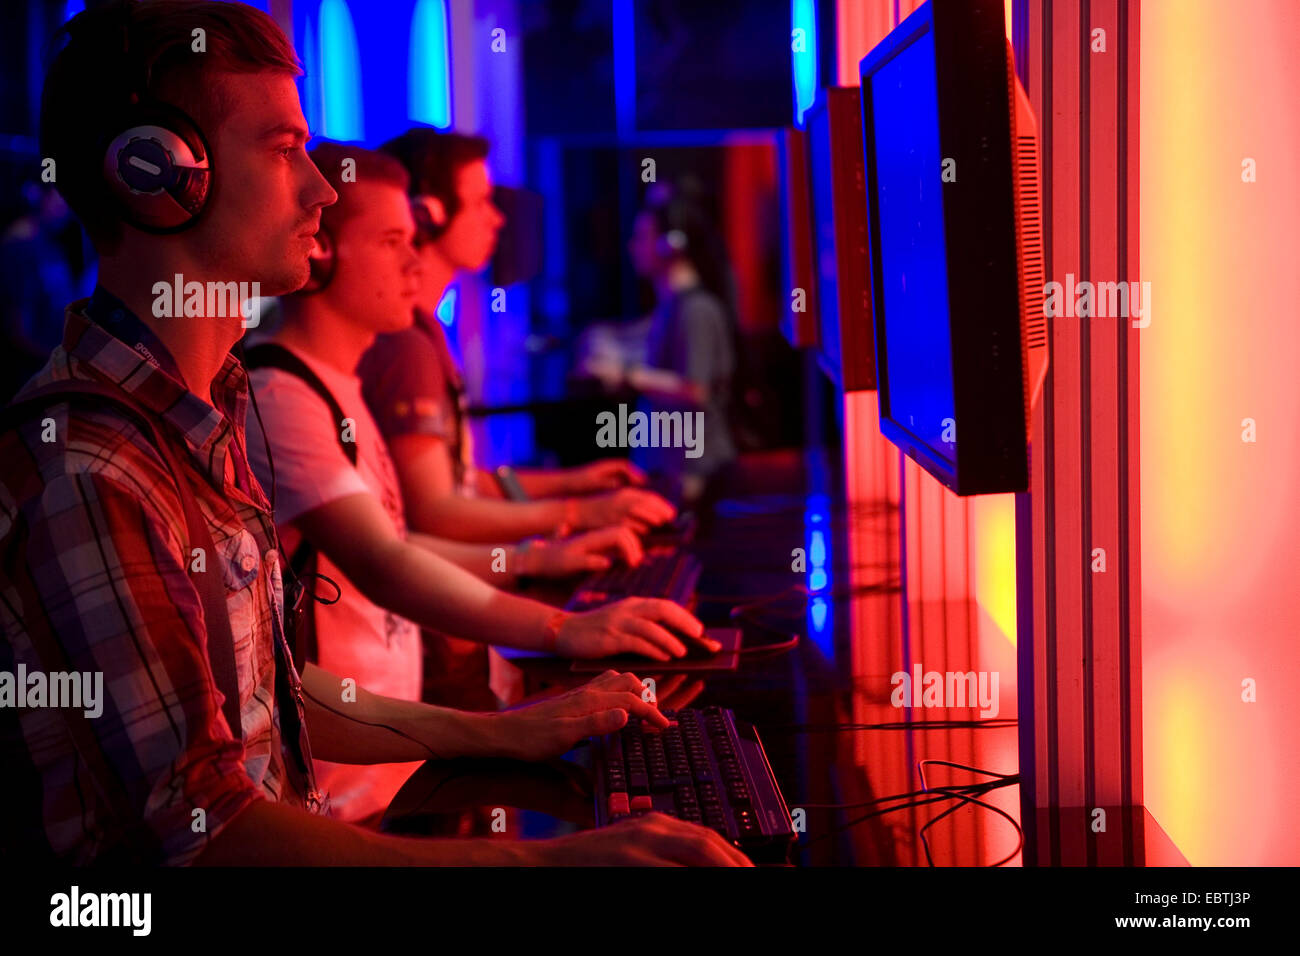 young visitors of the gamescom (the world's largest  trade fair for video games) testing new games, Germany - Stock Image